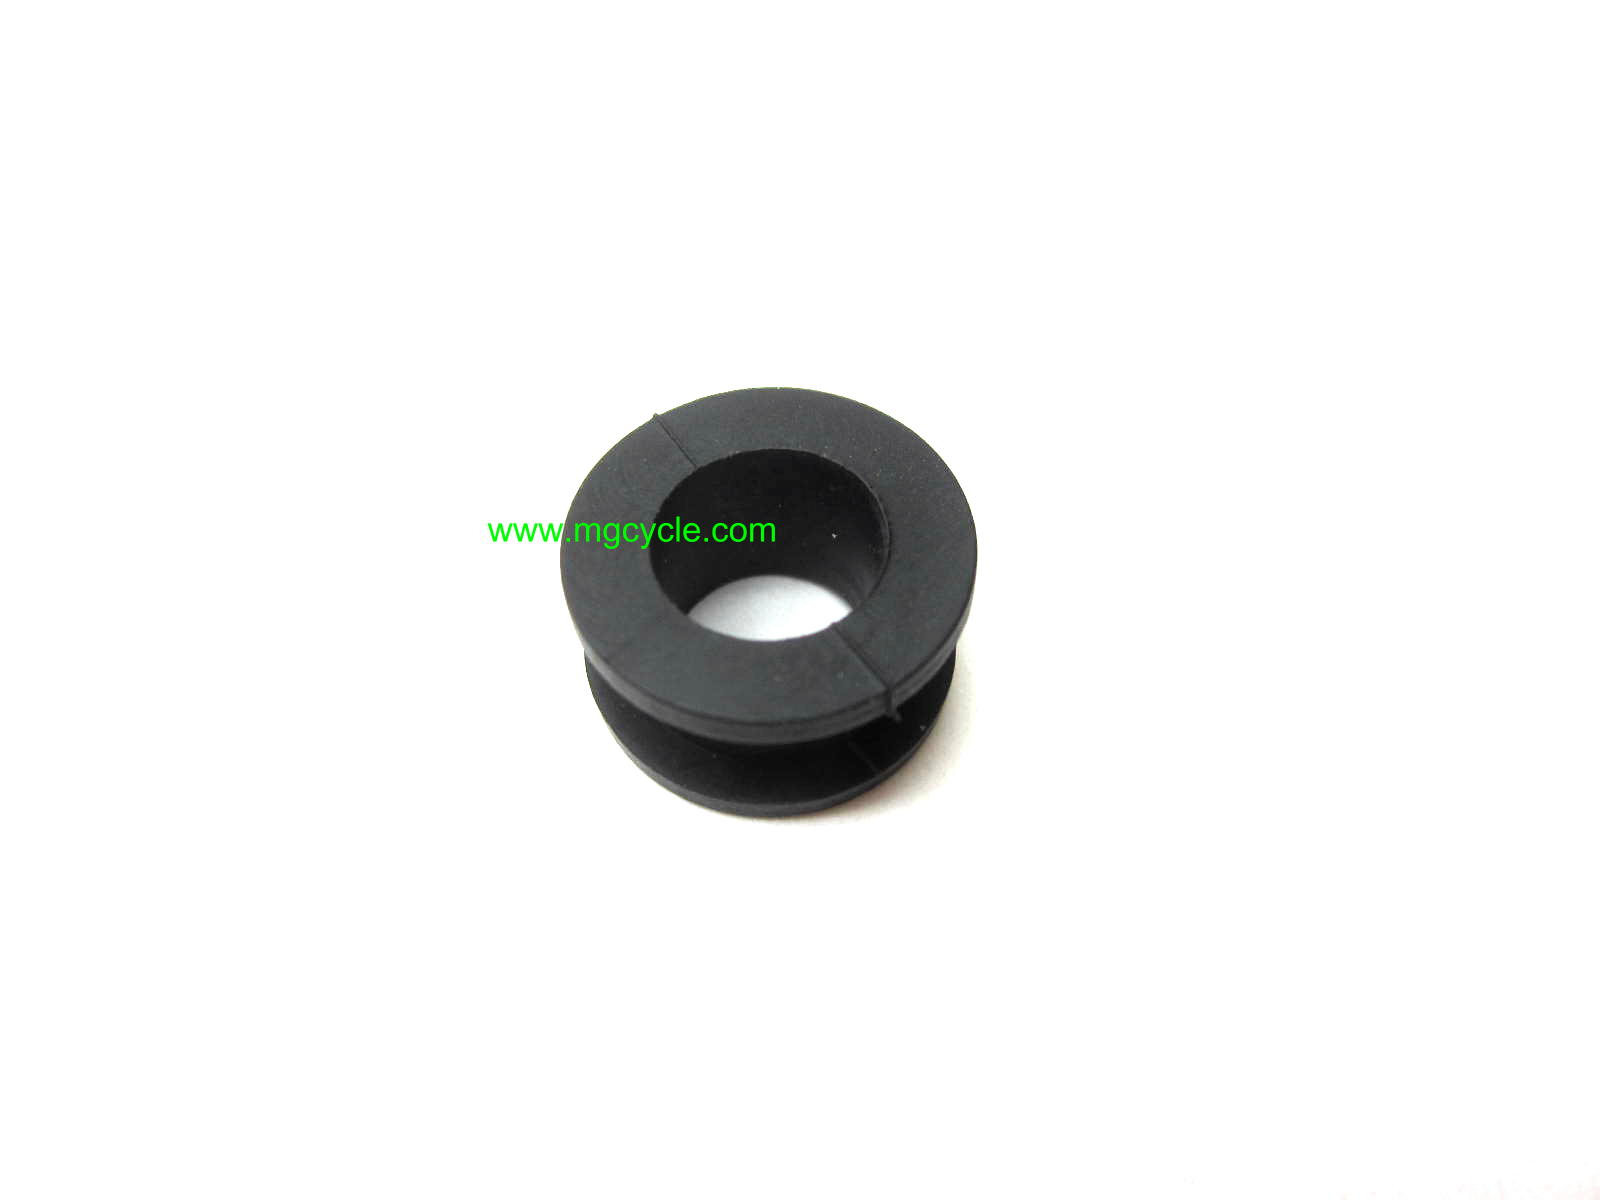 Grommet for windshield mount, California series